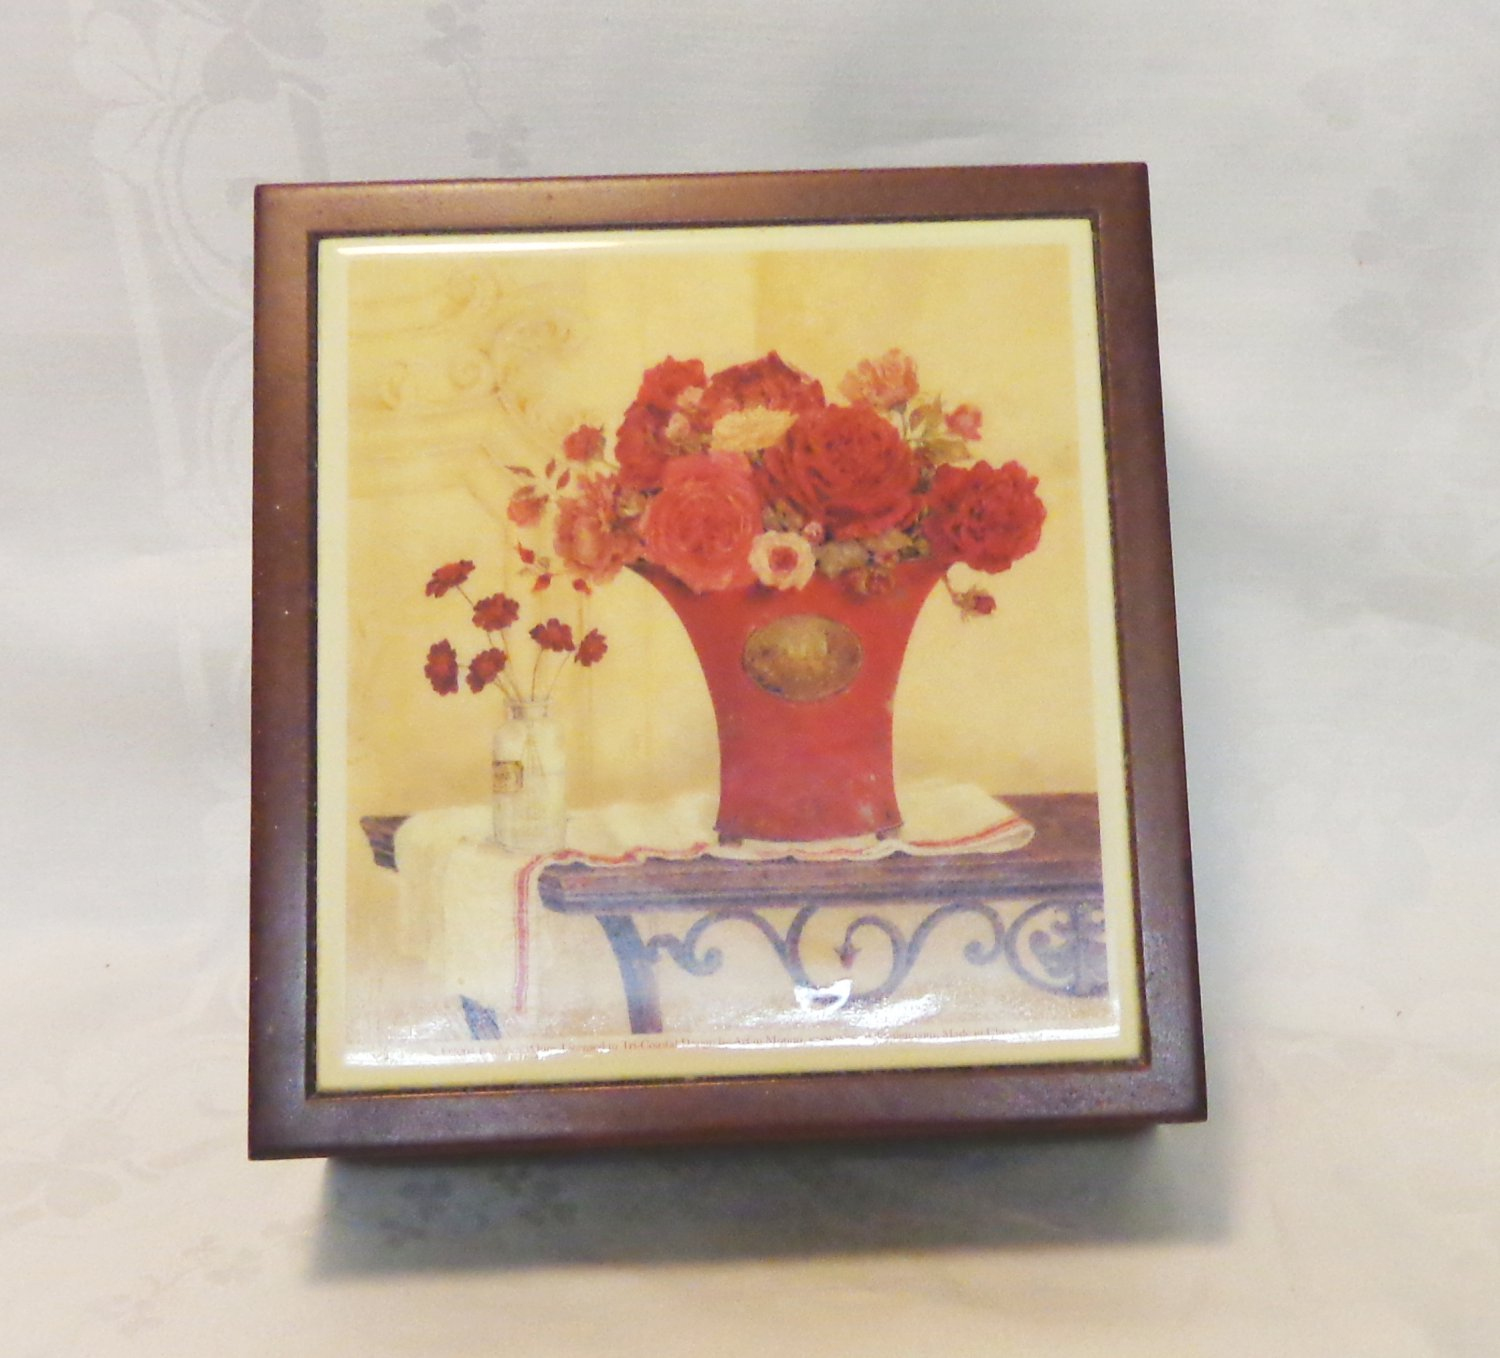 Kathryn White wood and tile jewelry box vase of roses excellent pre-owned ll3427